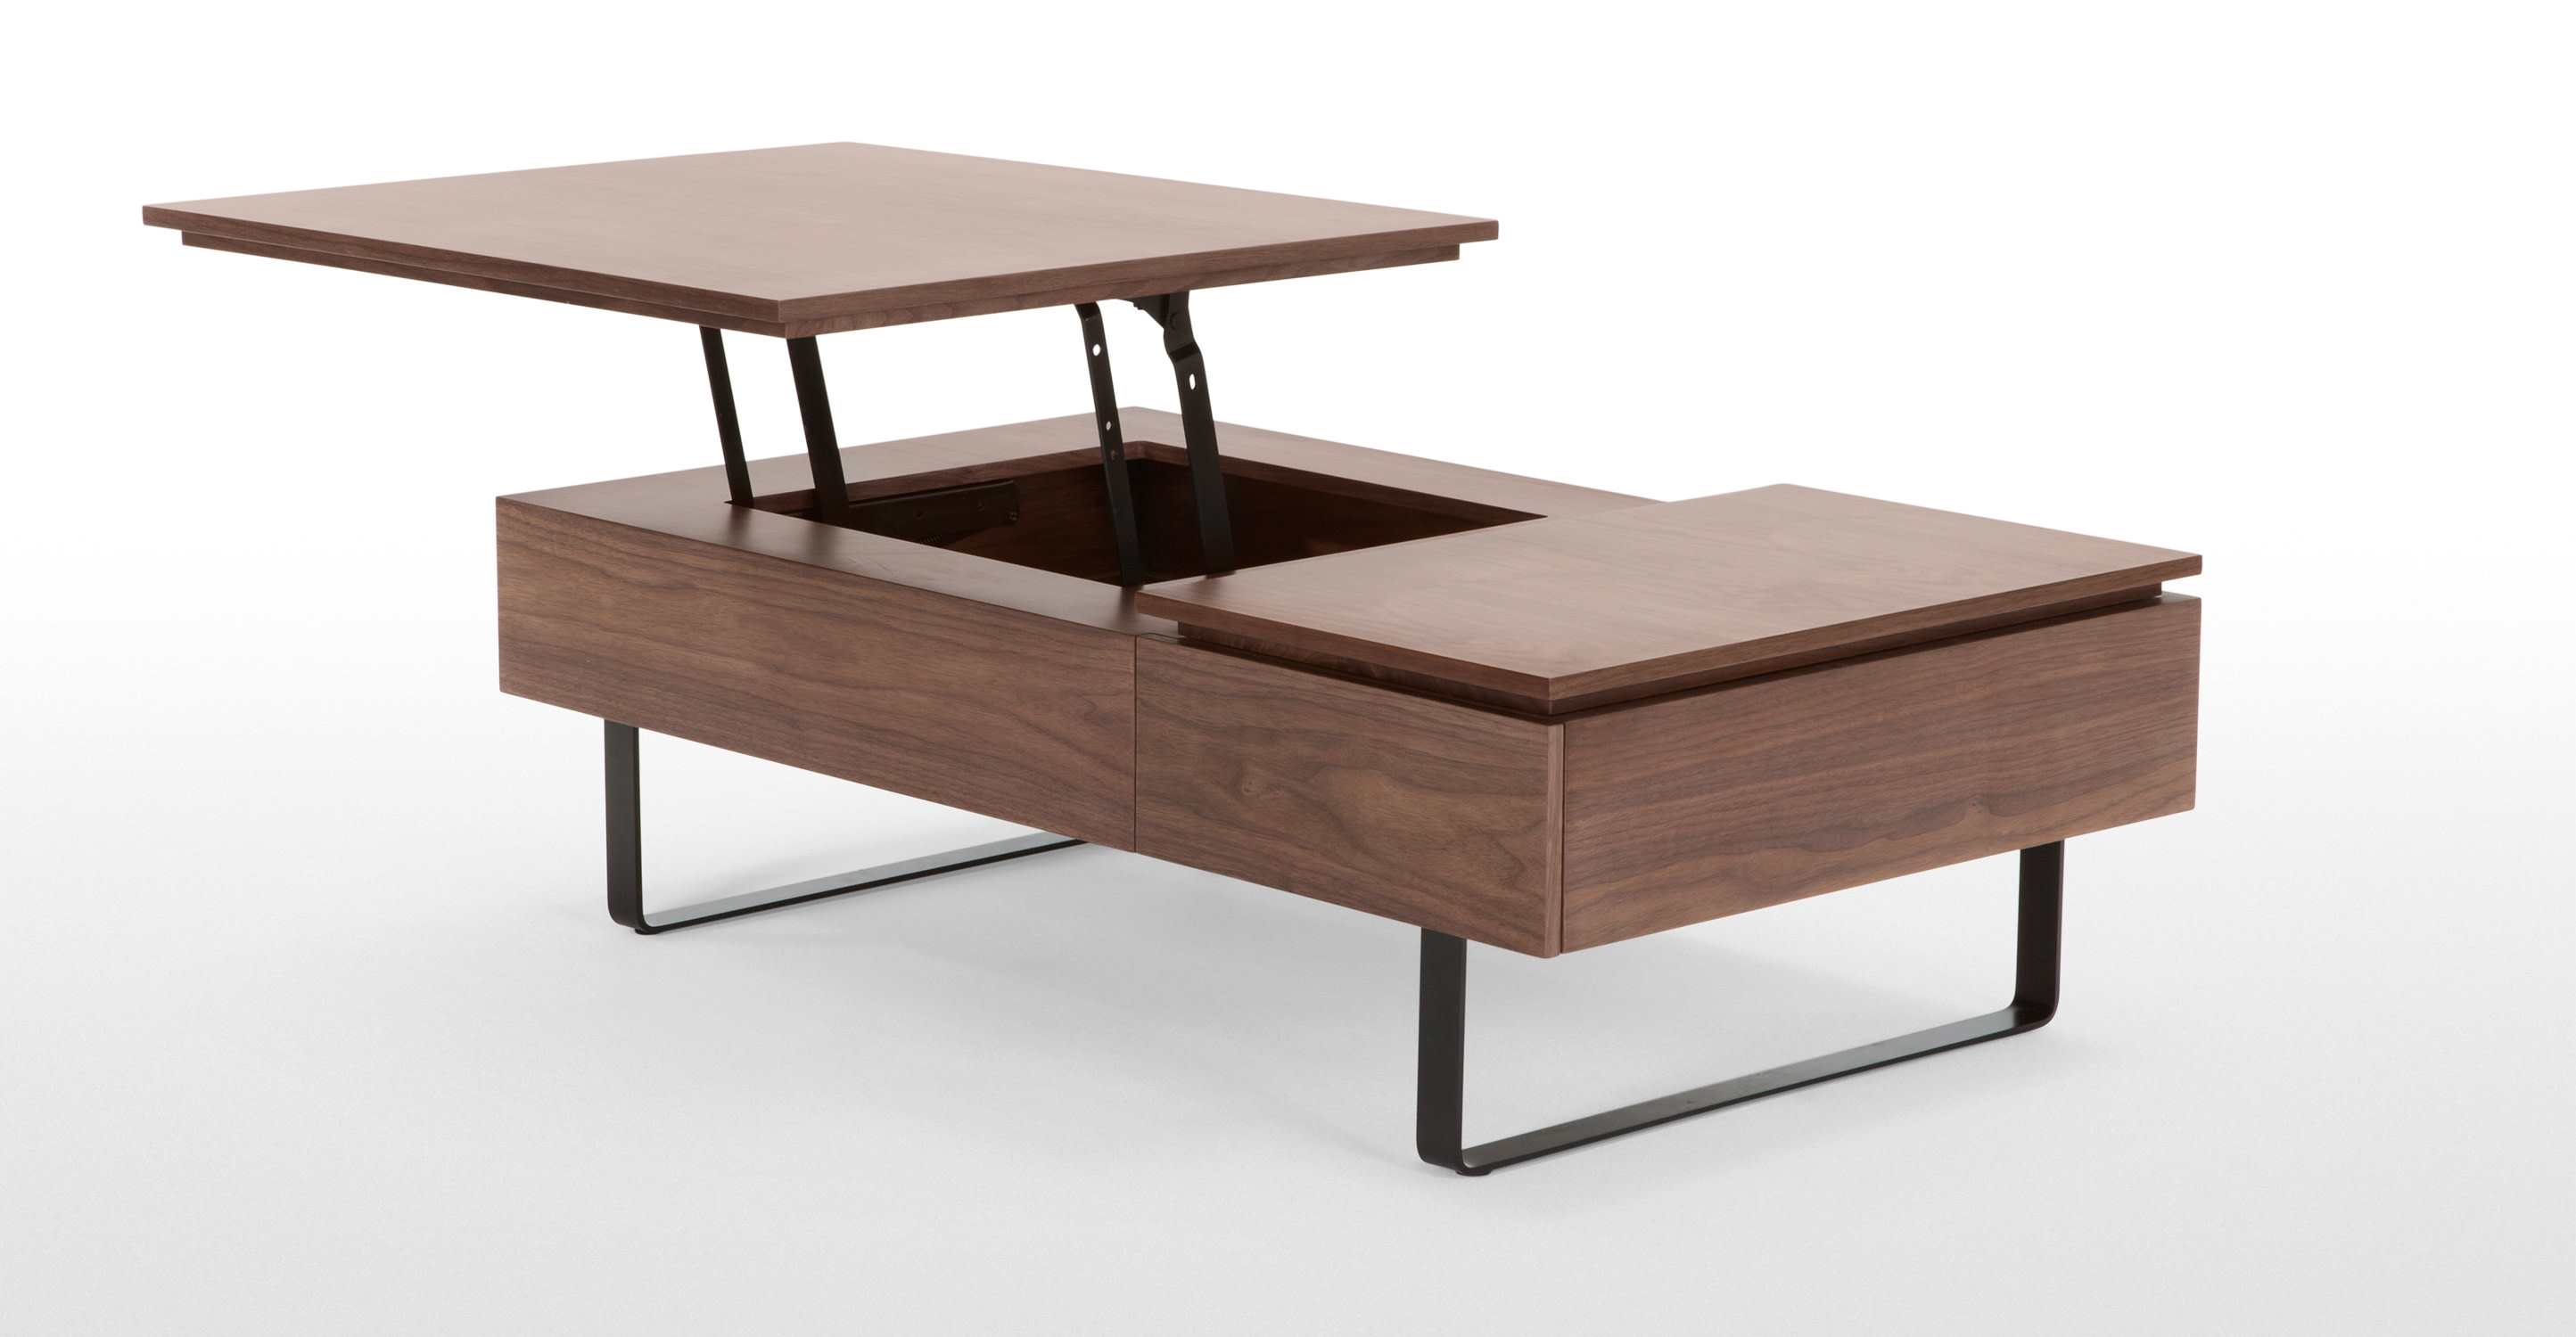 Best ideas about Coffee Table With Storage . Save or Pin Flippa Functional Coffee Table with Storage Walnut Now.